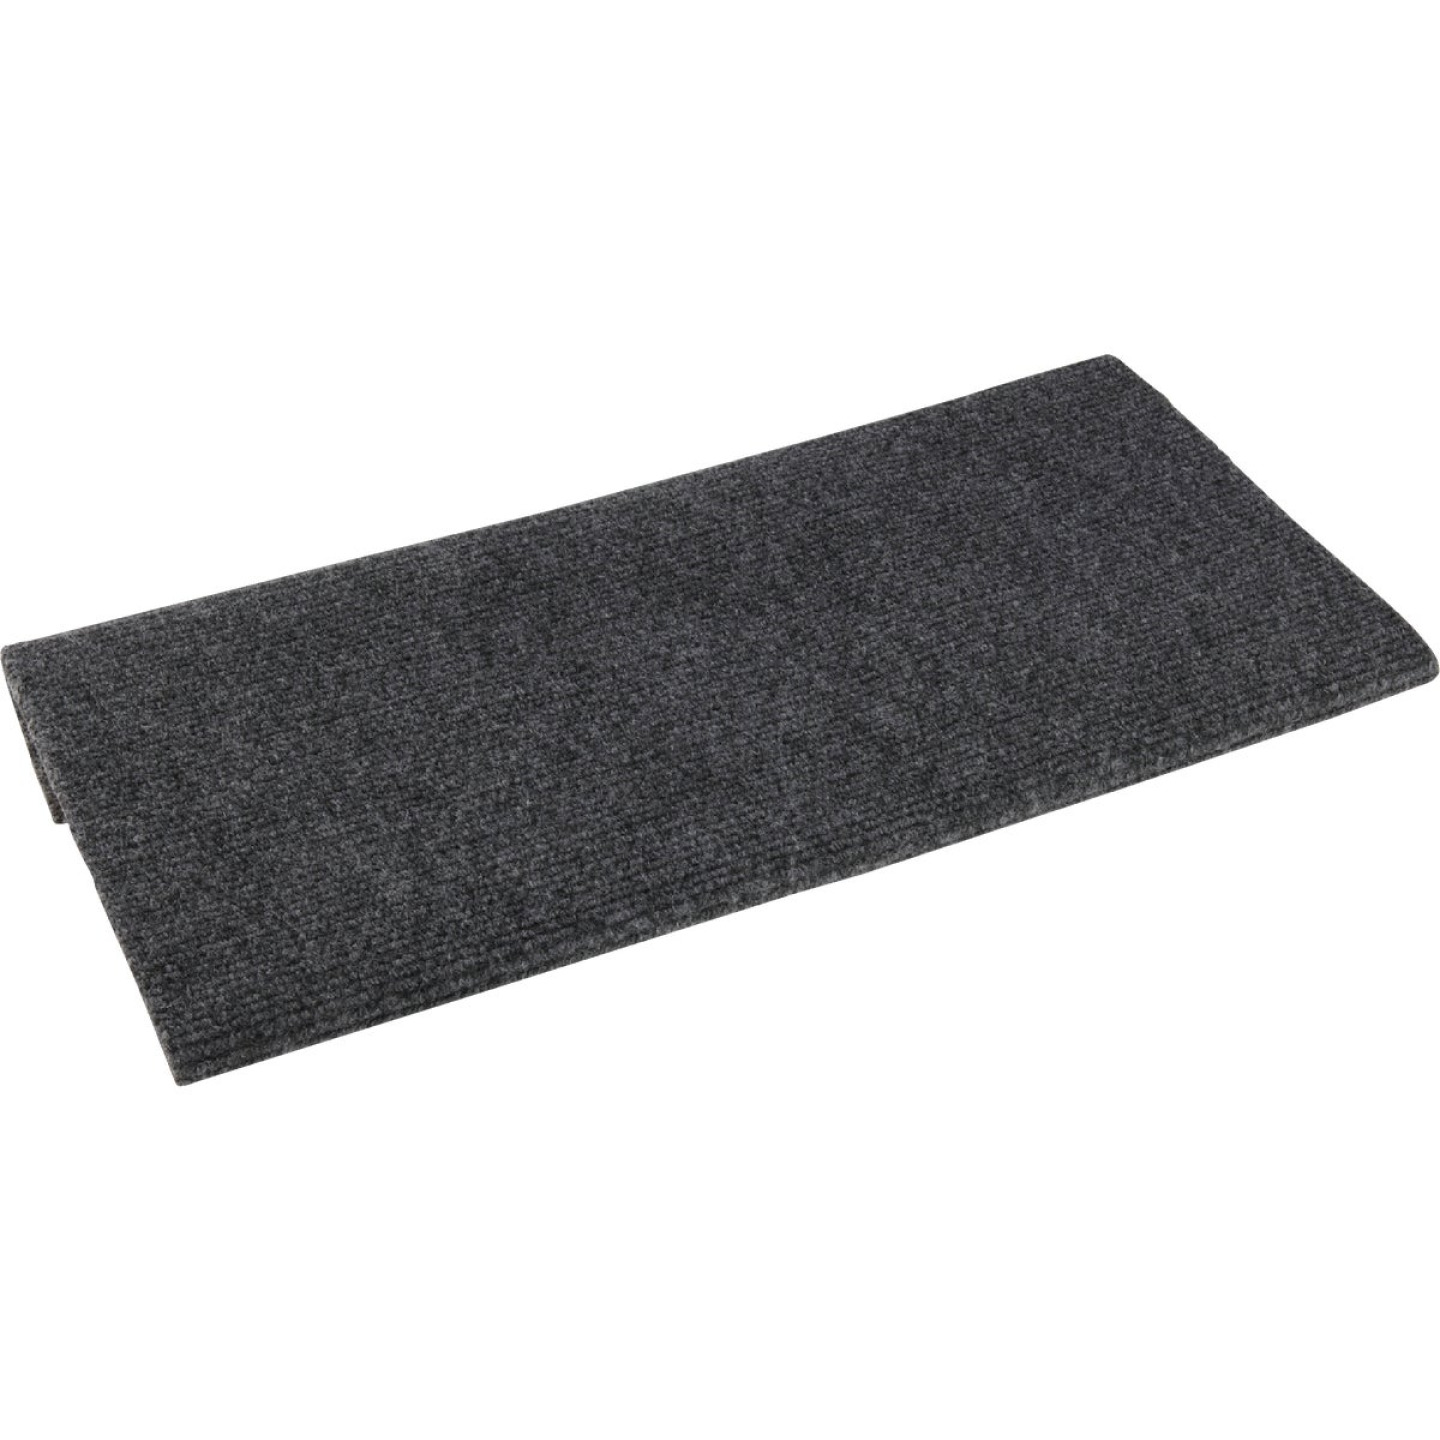 Camco 18 In. RV Rug Image 1